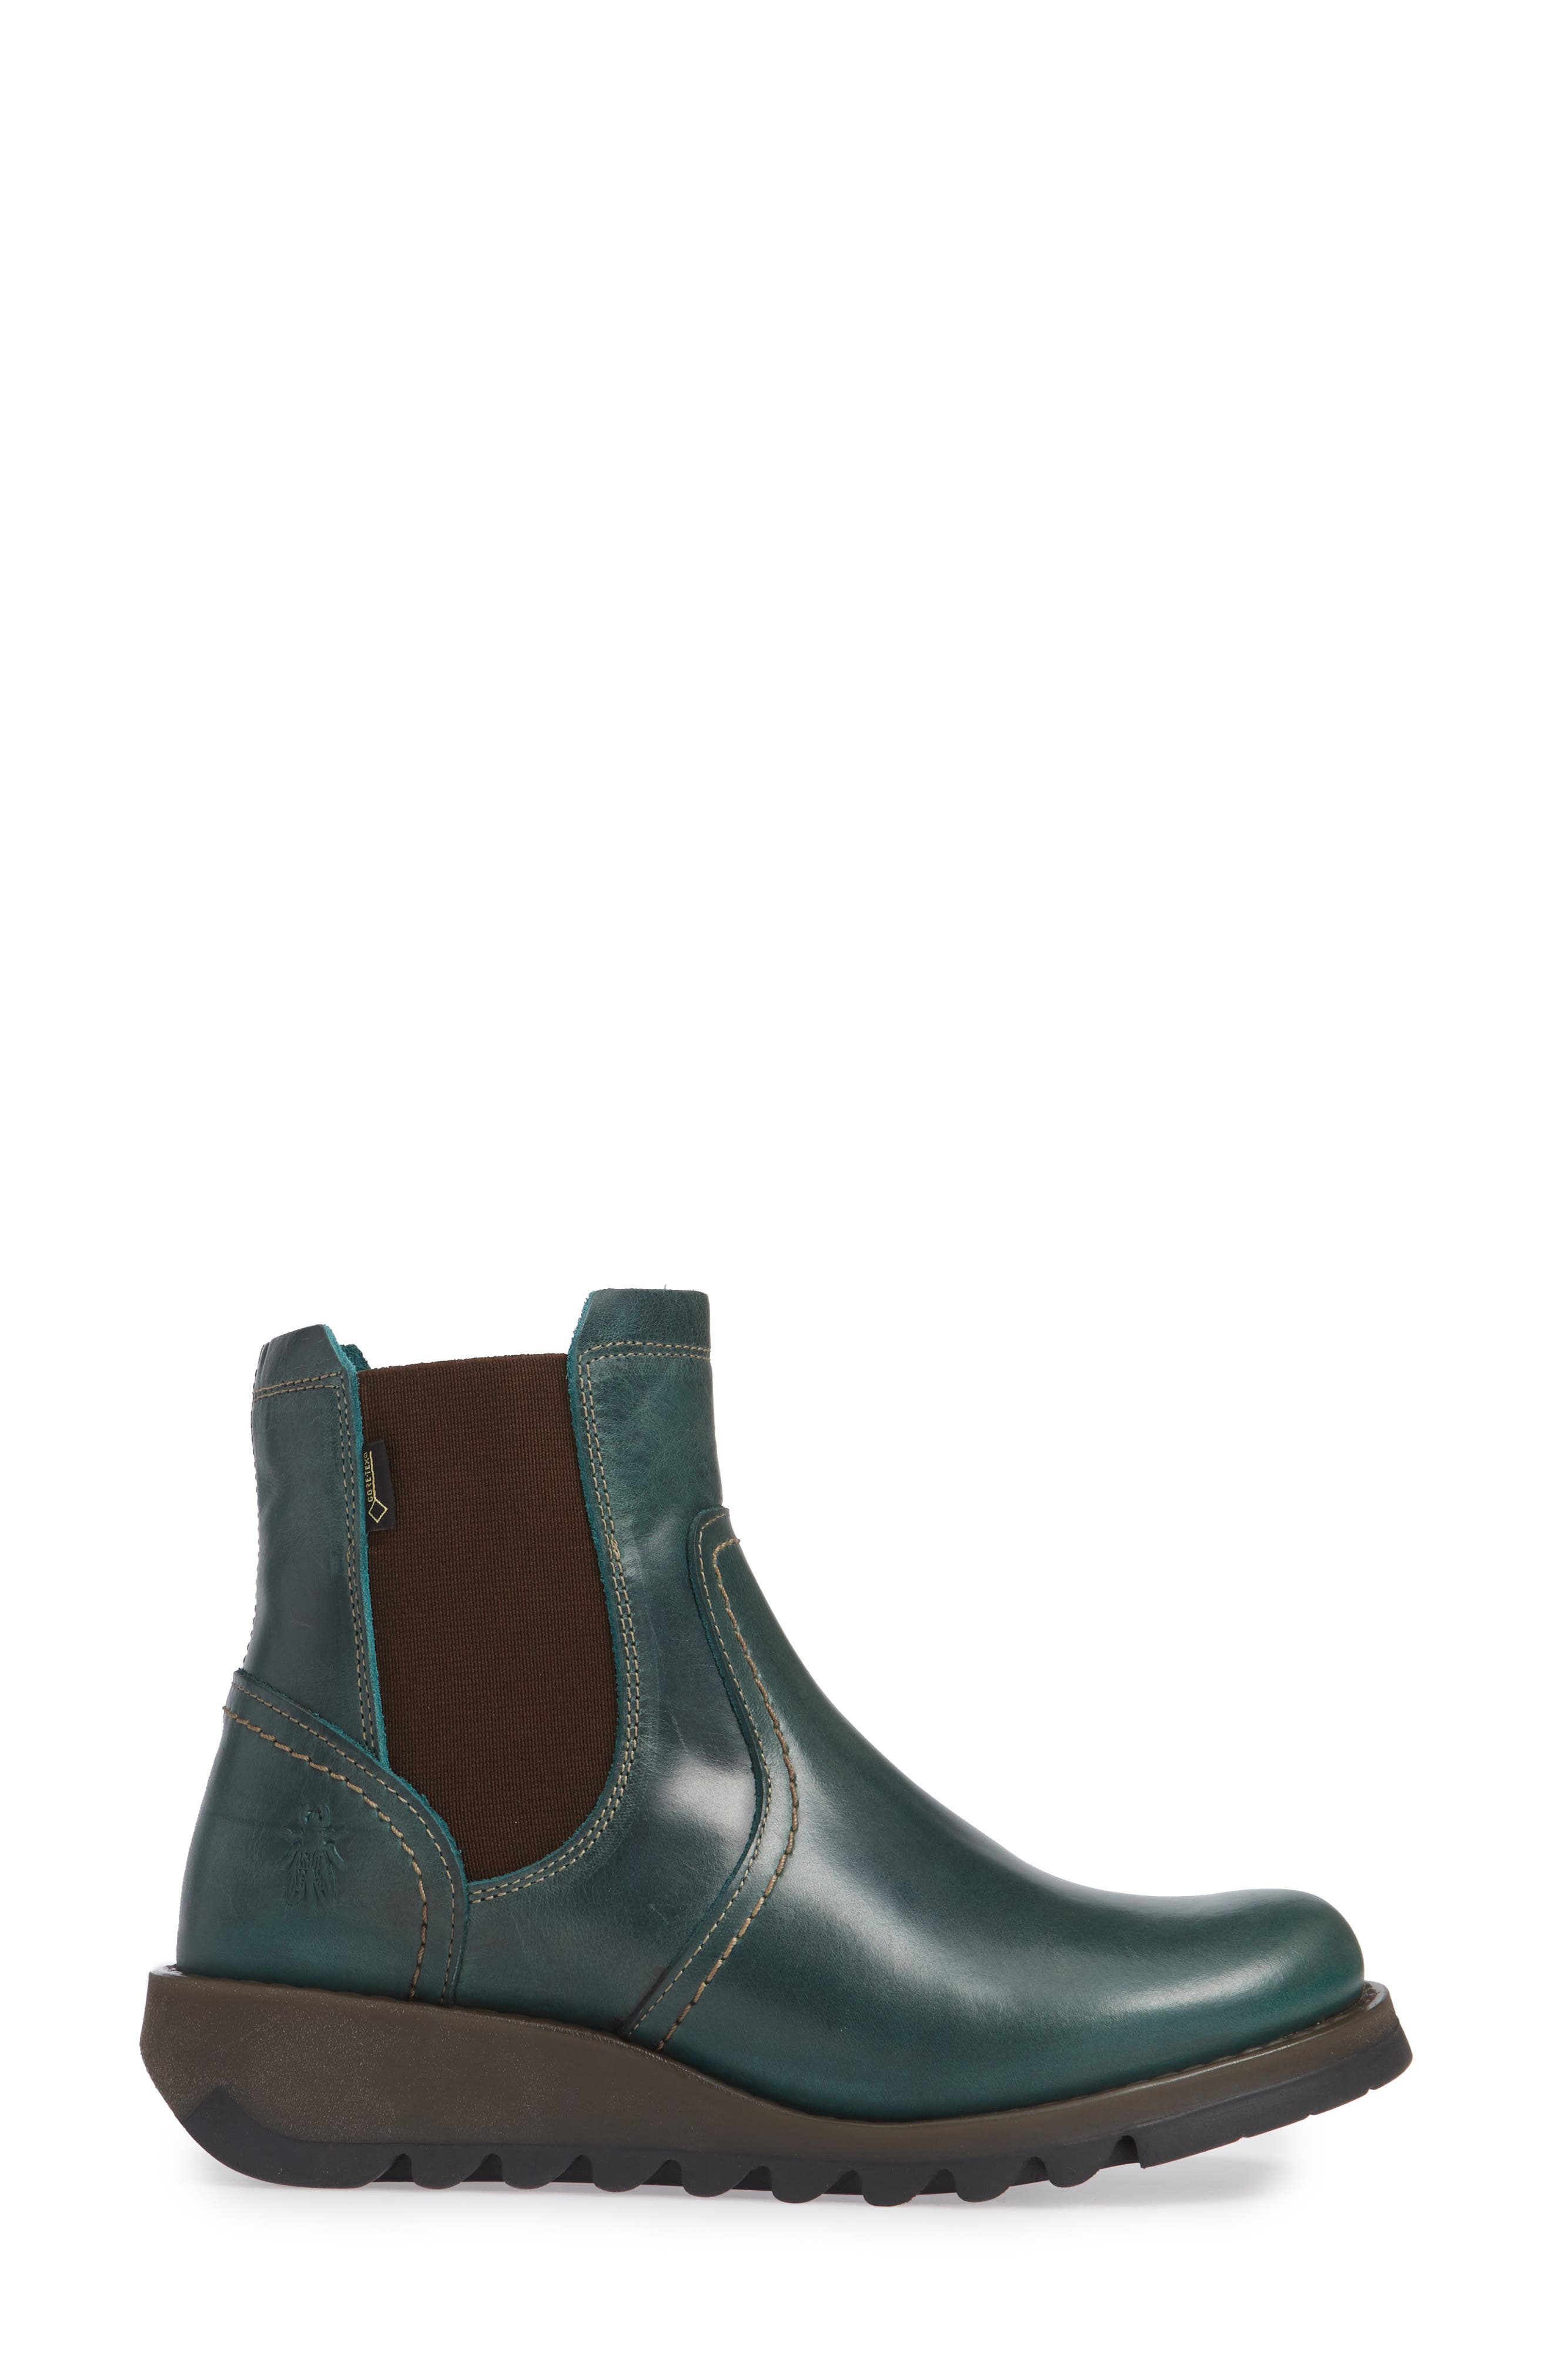 Scon Waterproof Gore-Tex<sup>®</sup> Chelsea Boot,                             Alternate thumbnail 5, color,                             Petrol